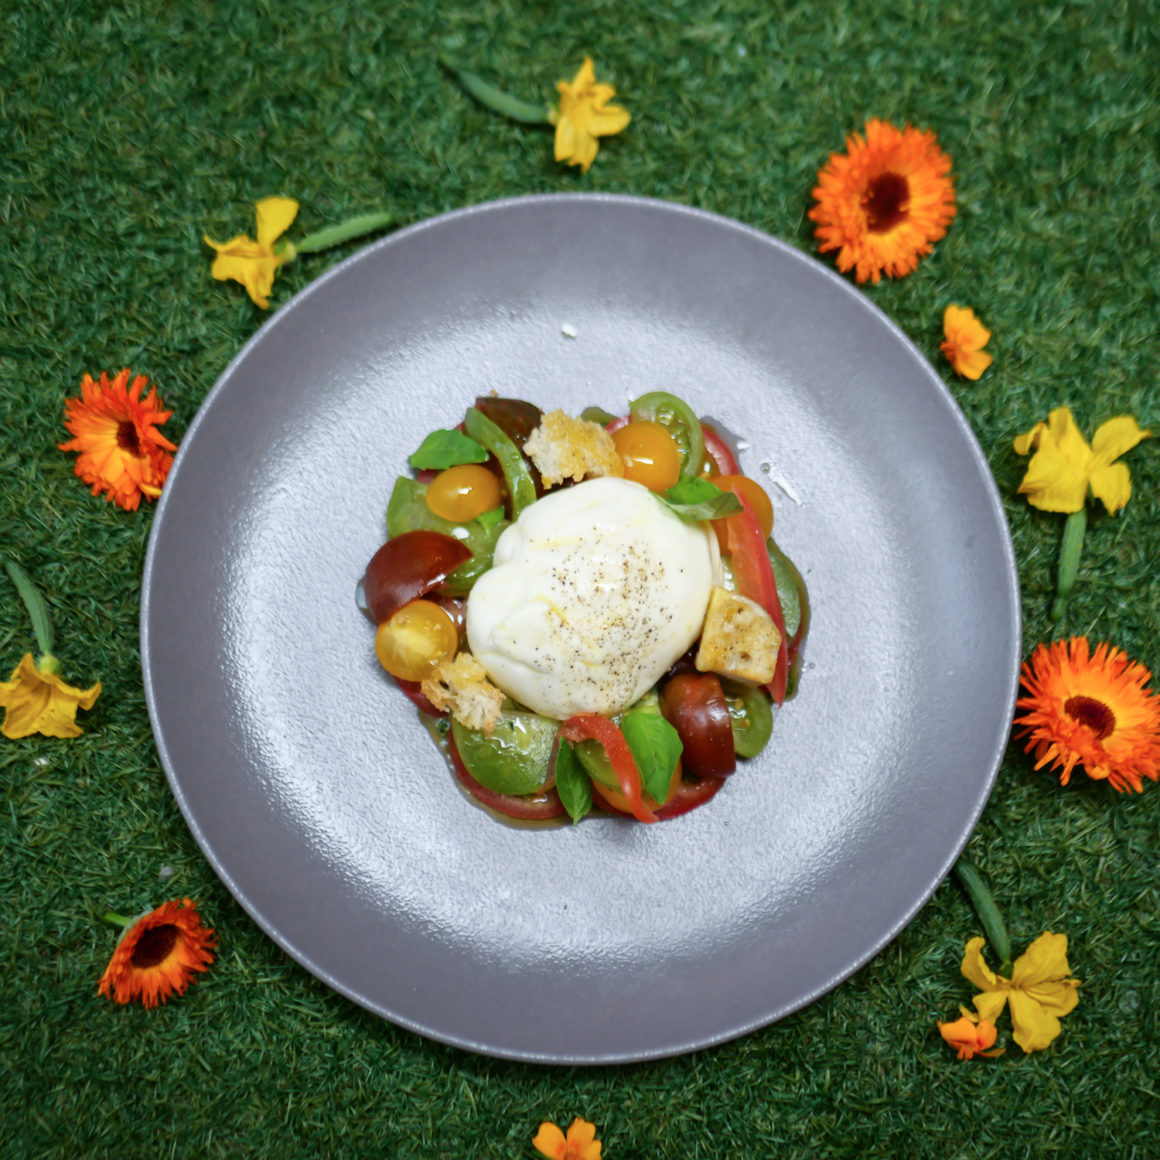 The Galvin HOP Summer Menu & Terrace for Al Fresco Dining: Burrata with Heritage Tomatoes